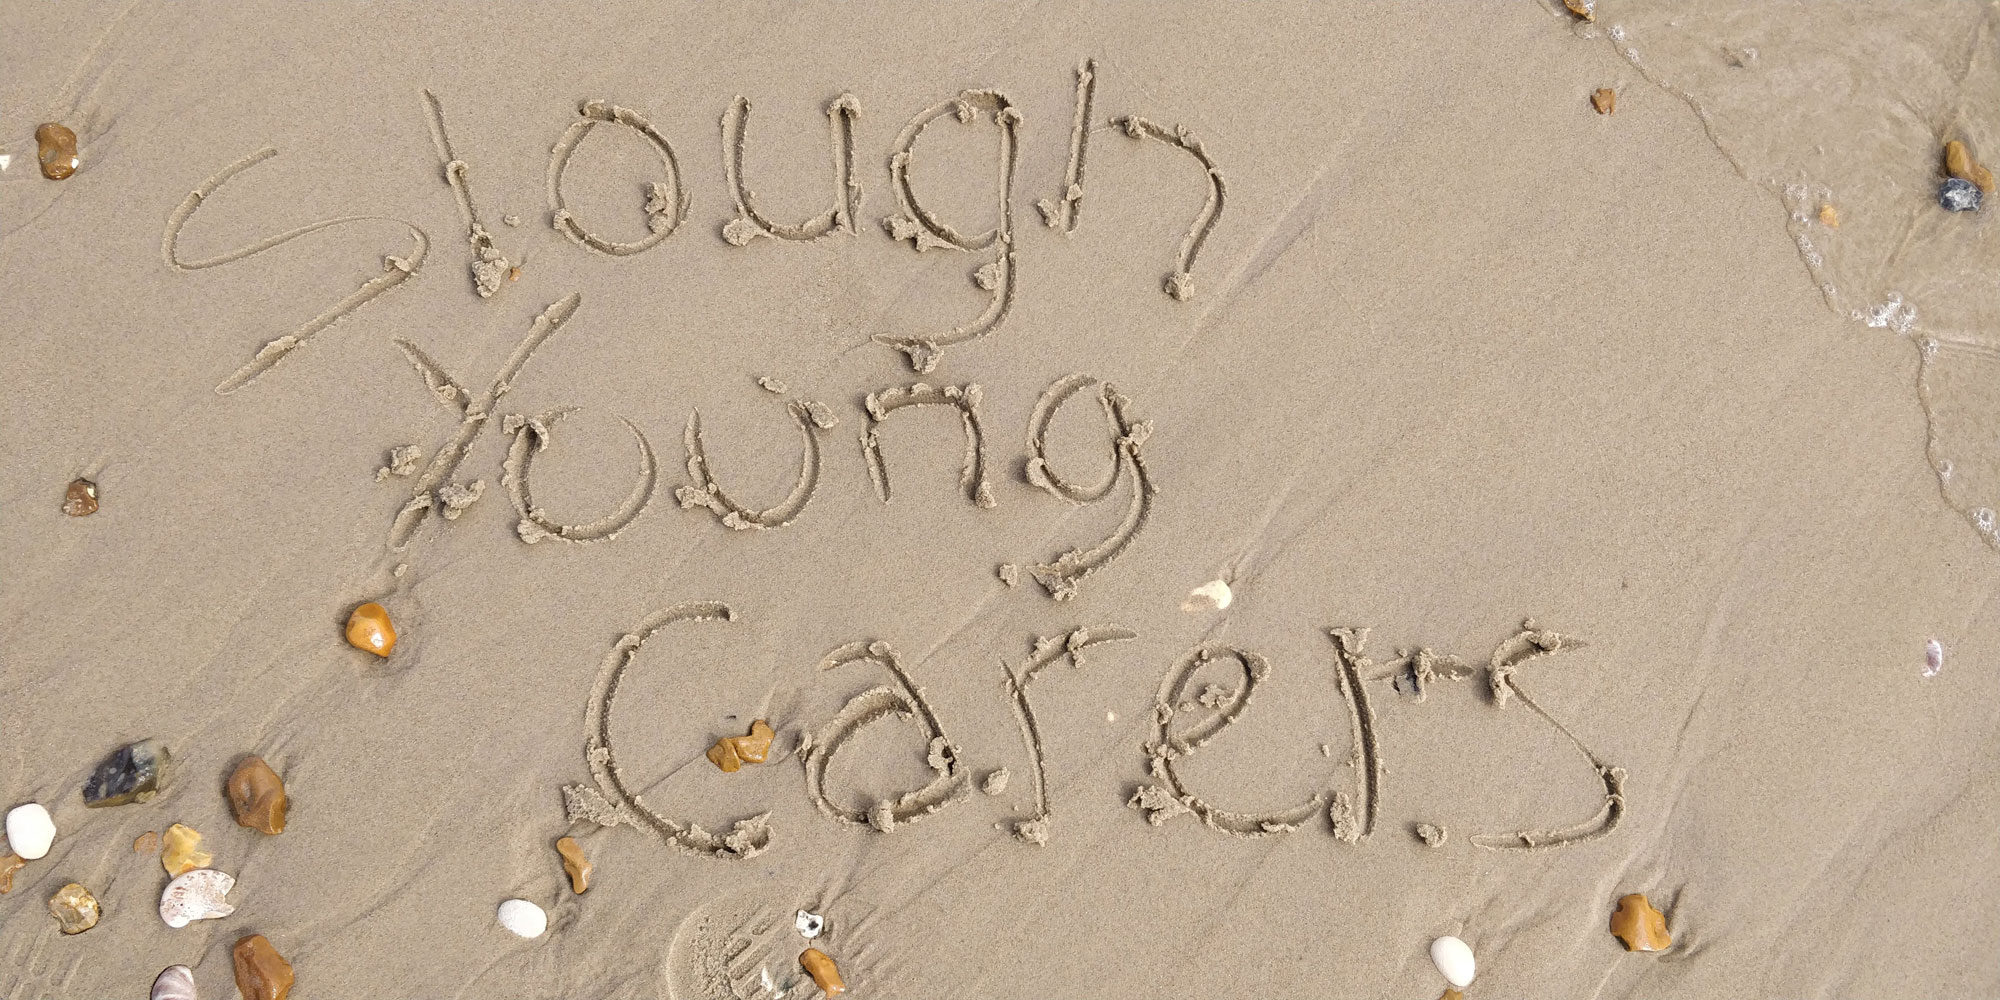 Young carers written in the sand